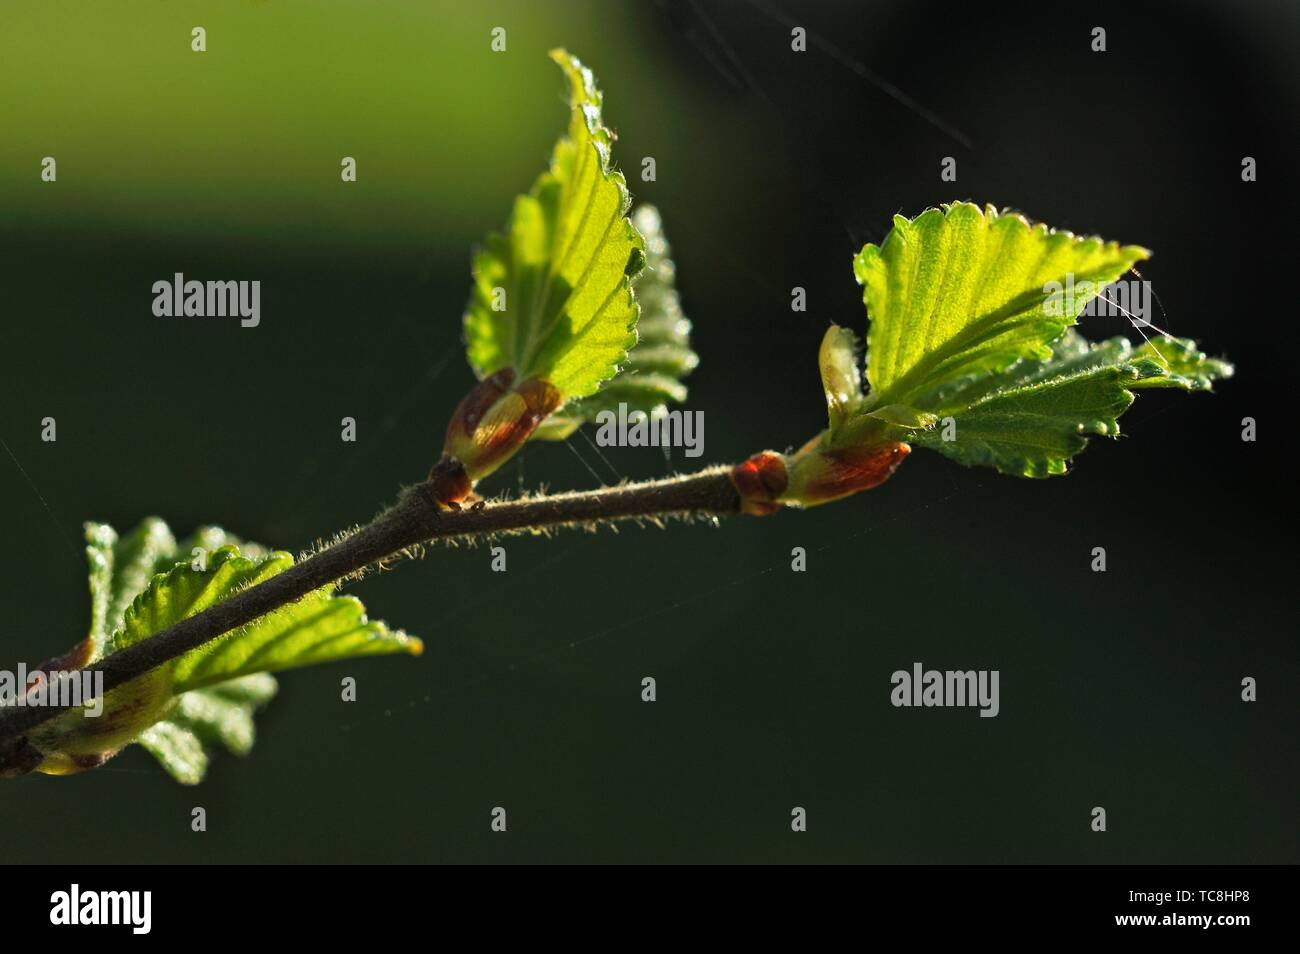 small branch with young leaves of silver birch tree (Betula pendula), Eure-et-Loir department, Centre-Val de Loire region, France, Europe. - Stock Image